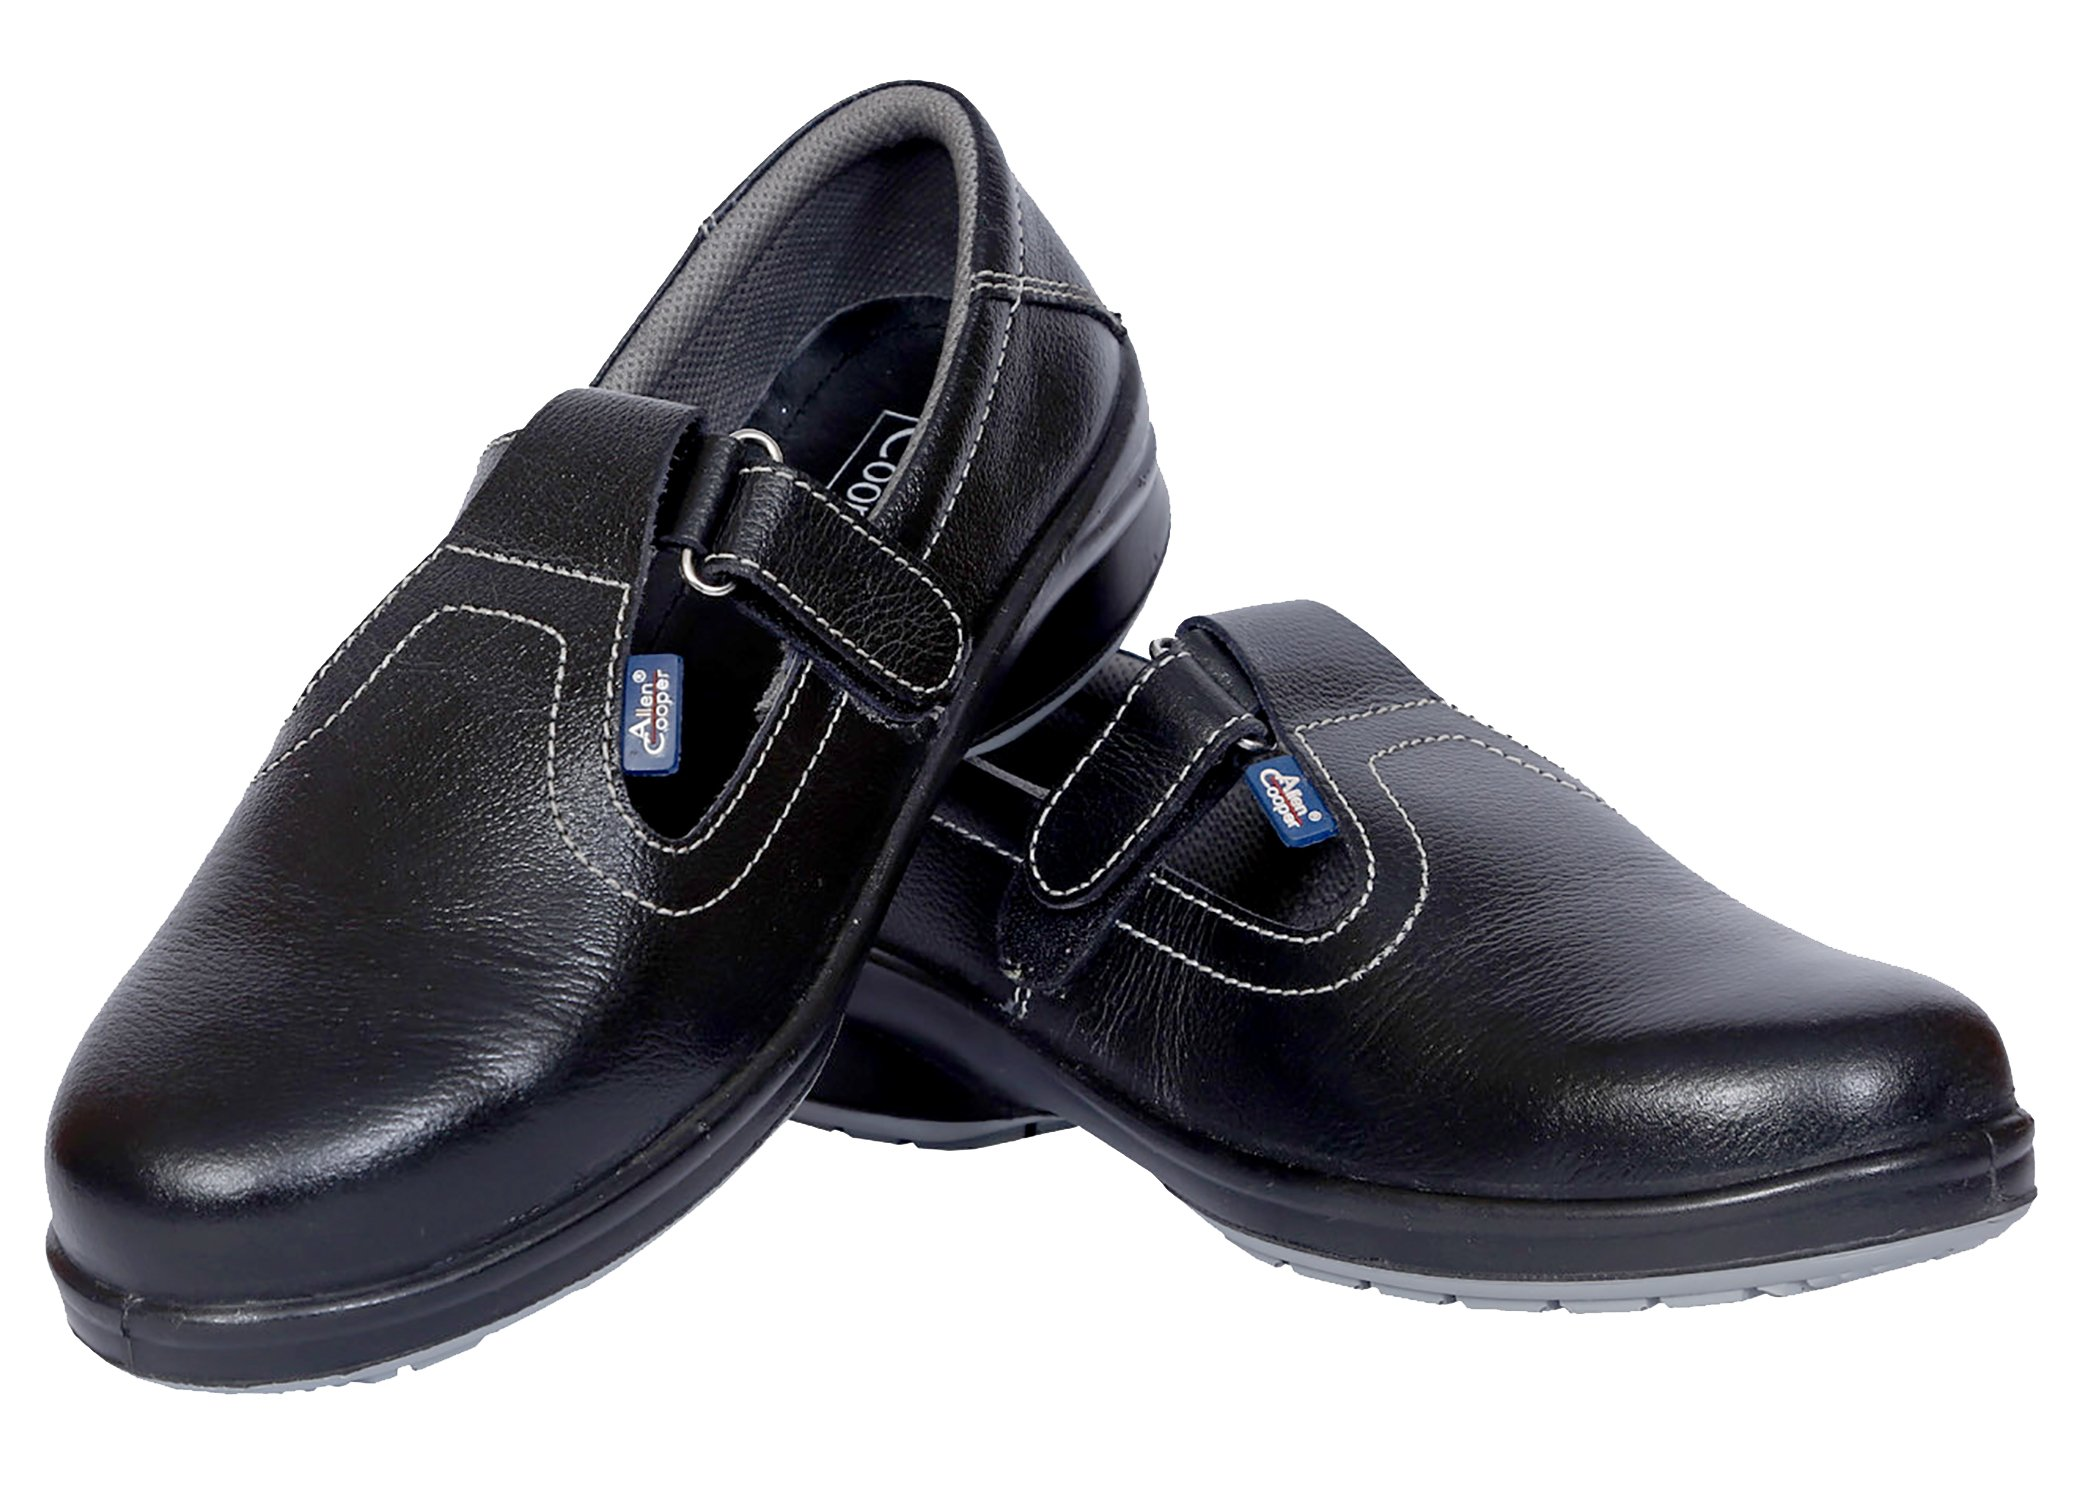 Allen Cooper AC-1197 Women Safety Shoe, ISI Marked for IS 15298 Part-2, Double Density DIP-PU Sole, Size 5, BLACK